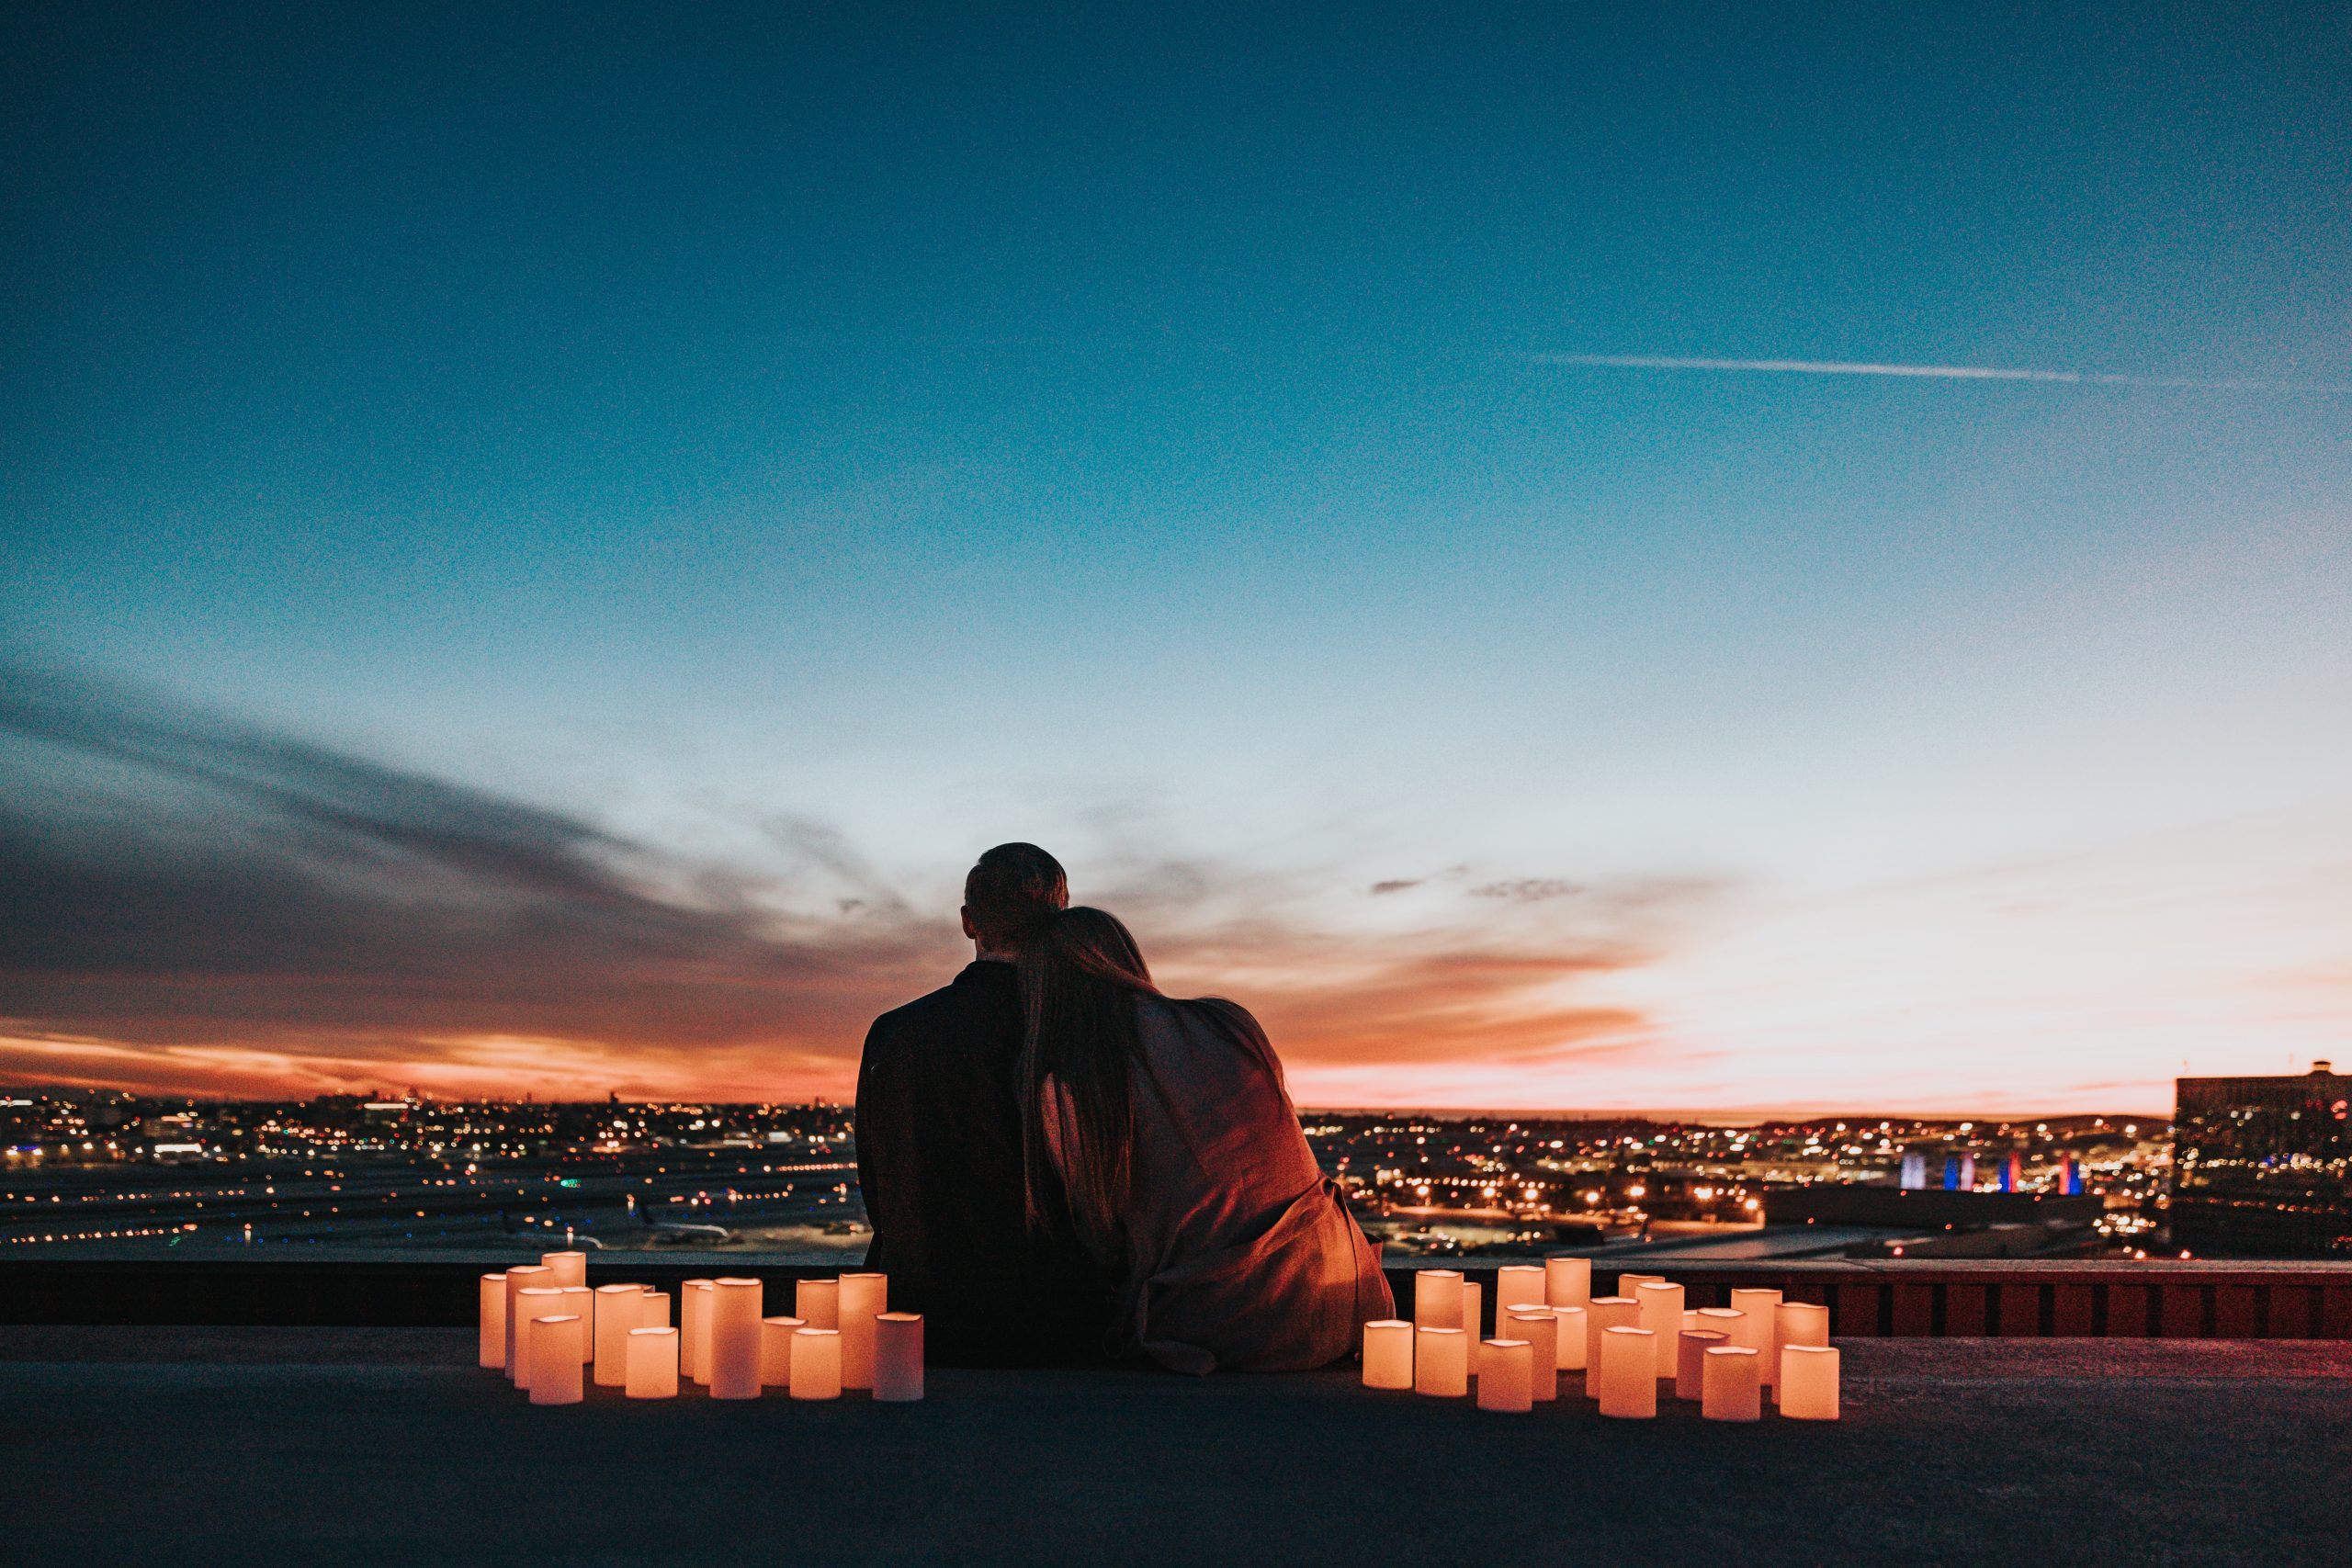 Couple sitting and overlooking the city during sunset